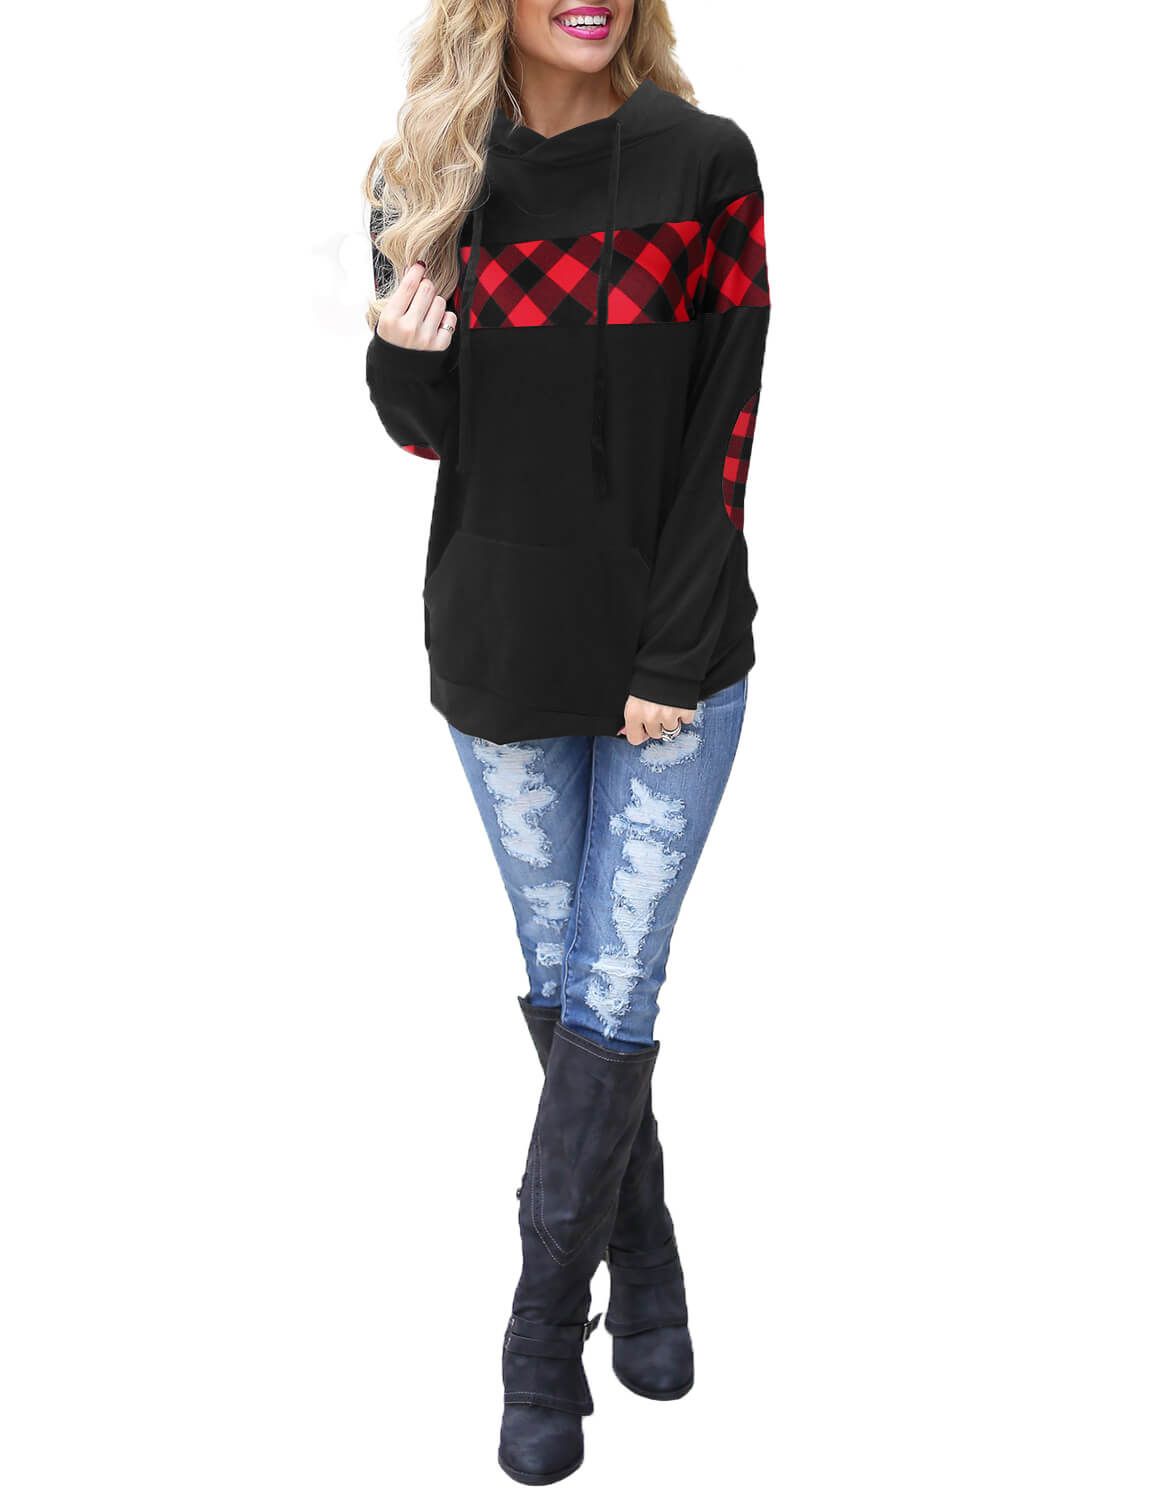 Blooming Jelly_Contrast Check Long Sleeve Sweatshirt_Black&Red Contrast Check_152357_21_Autumn&Winter Contrast Outdoor_Tops_Hoodie